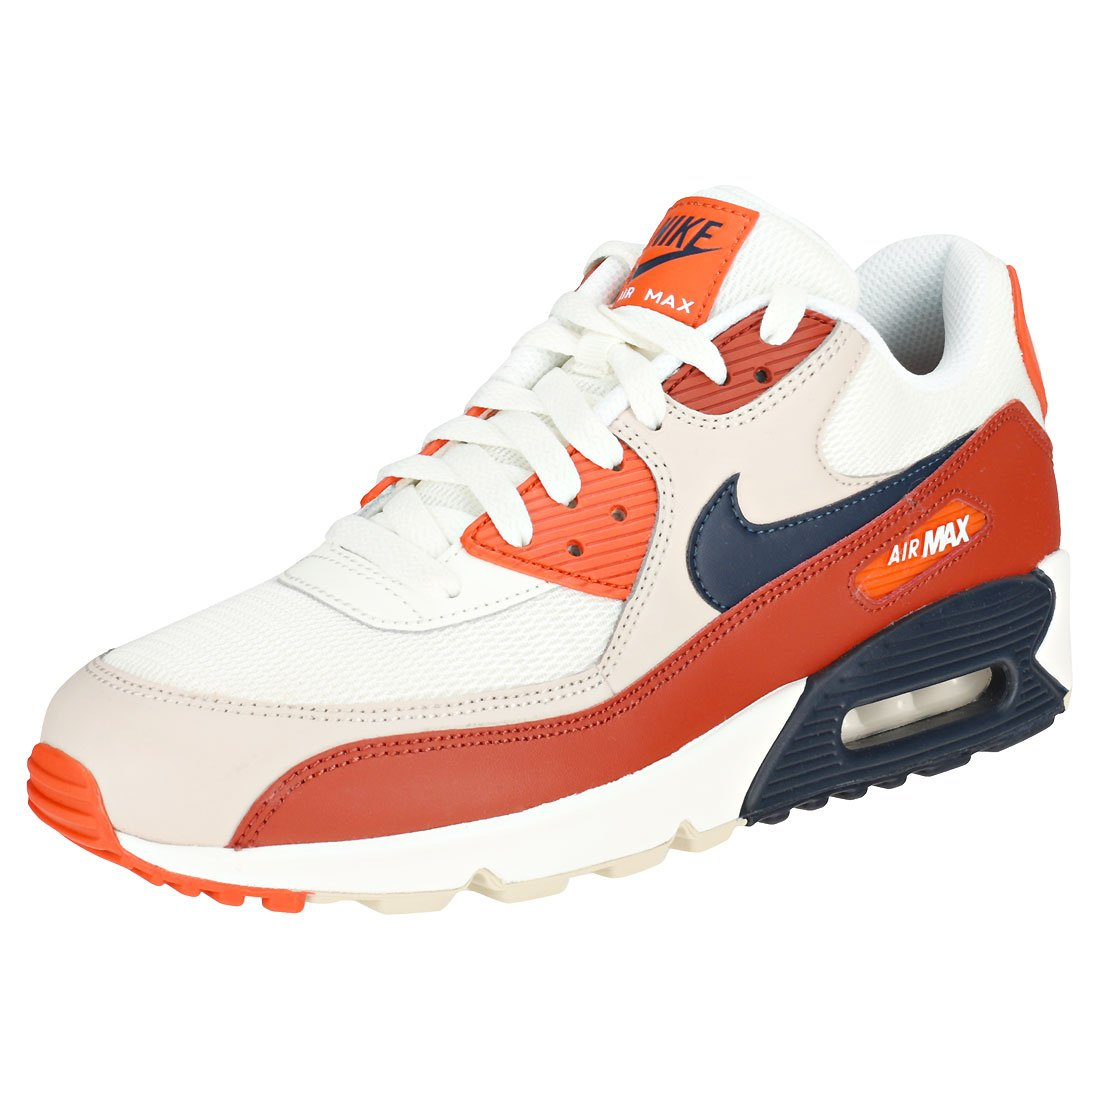 876a0d3a7549e Nike Air Max 90 Essential Mens Trainers Beige Brown - 7 UK  Amazon.co.uk   Shoes   Bags